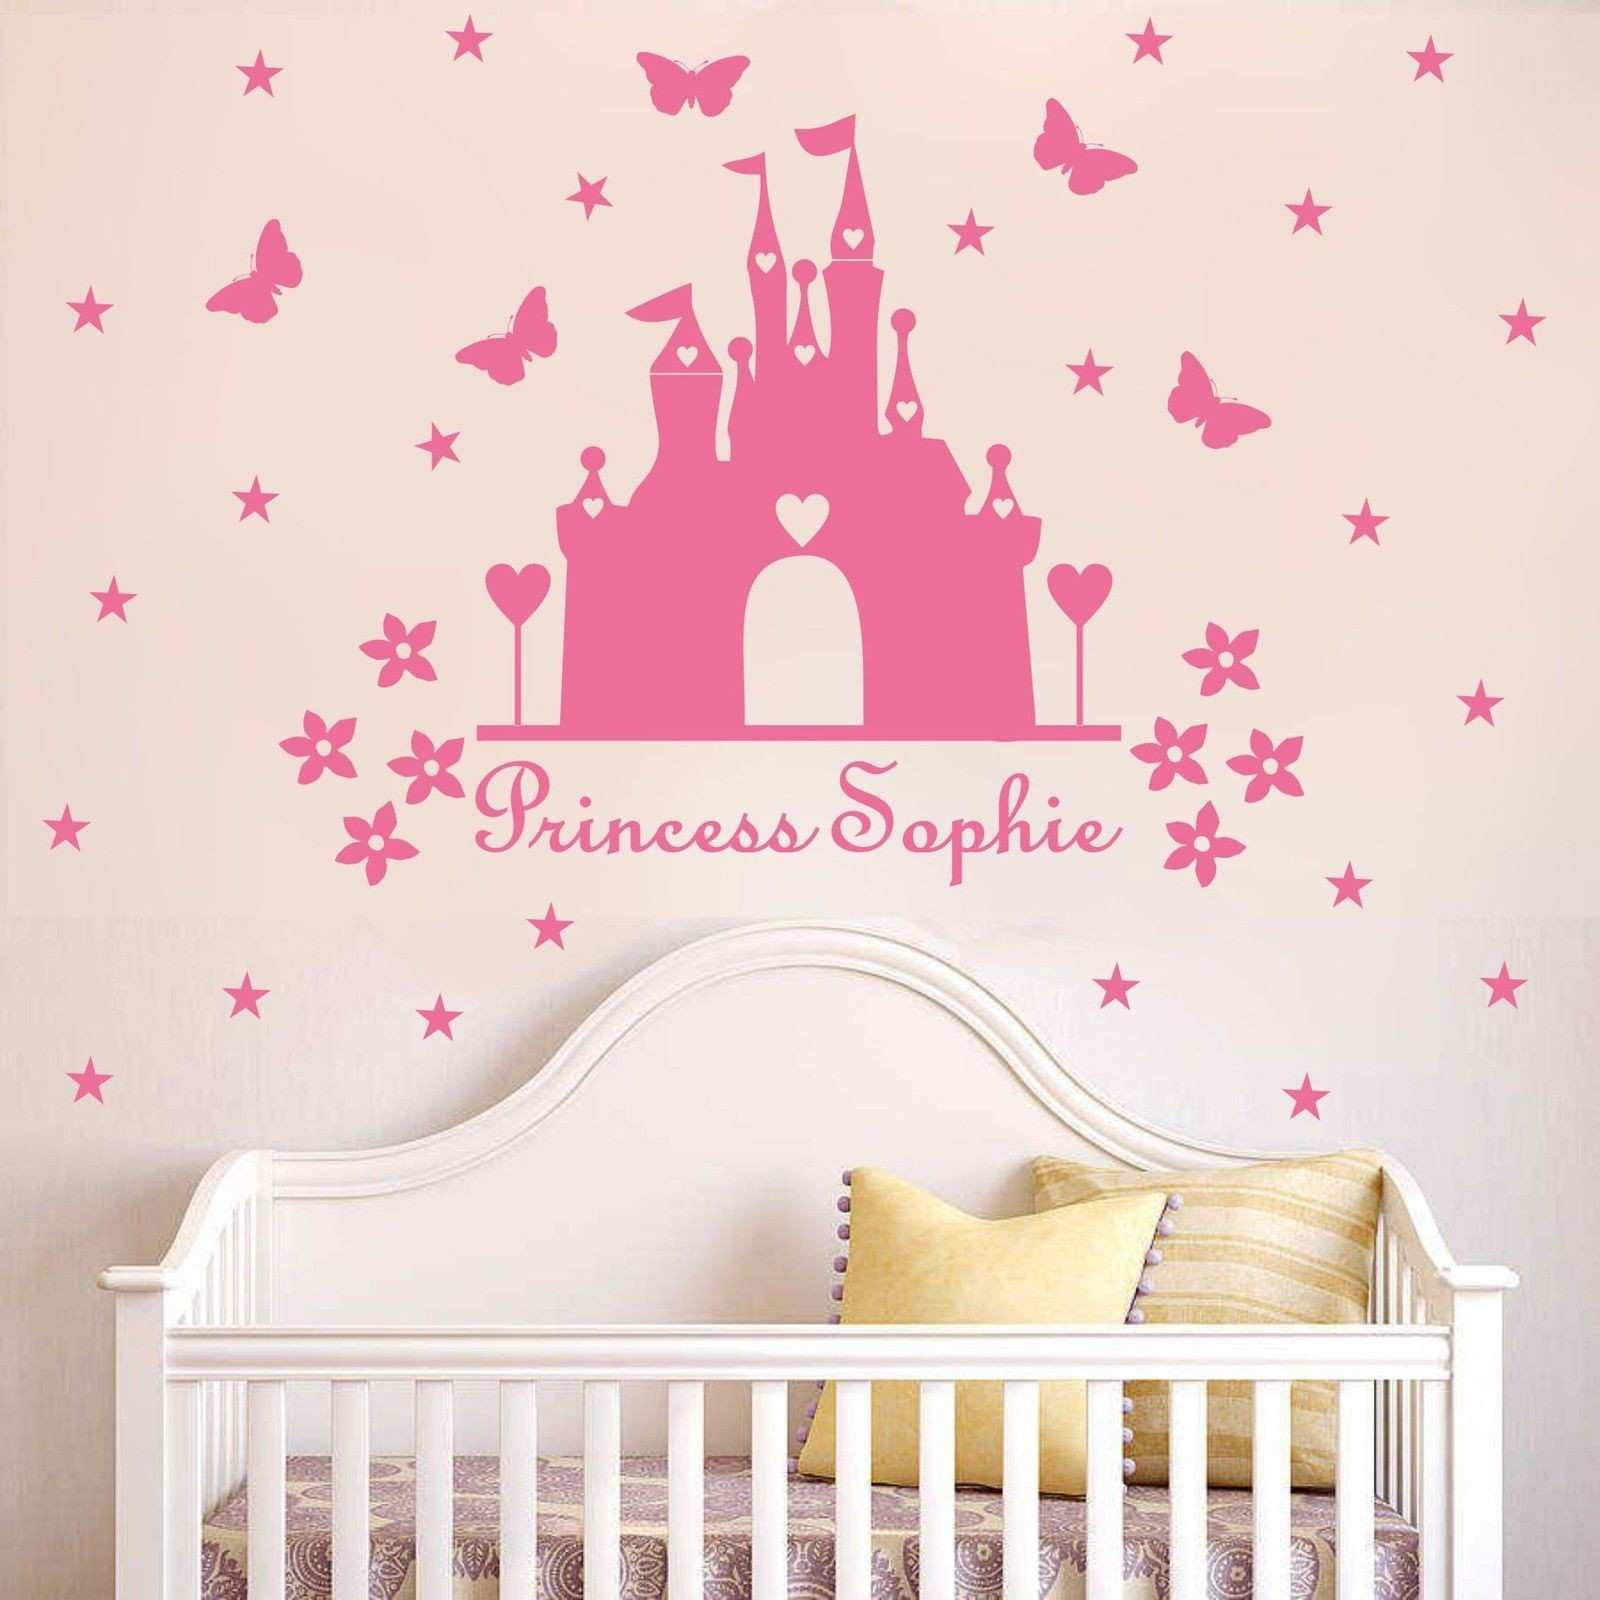 44 Luxury Childrens Name Wall Stickers